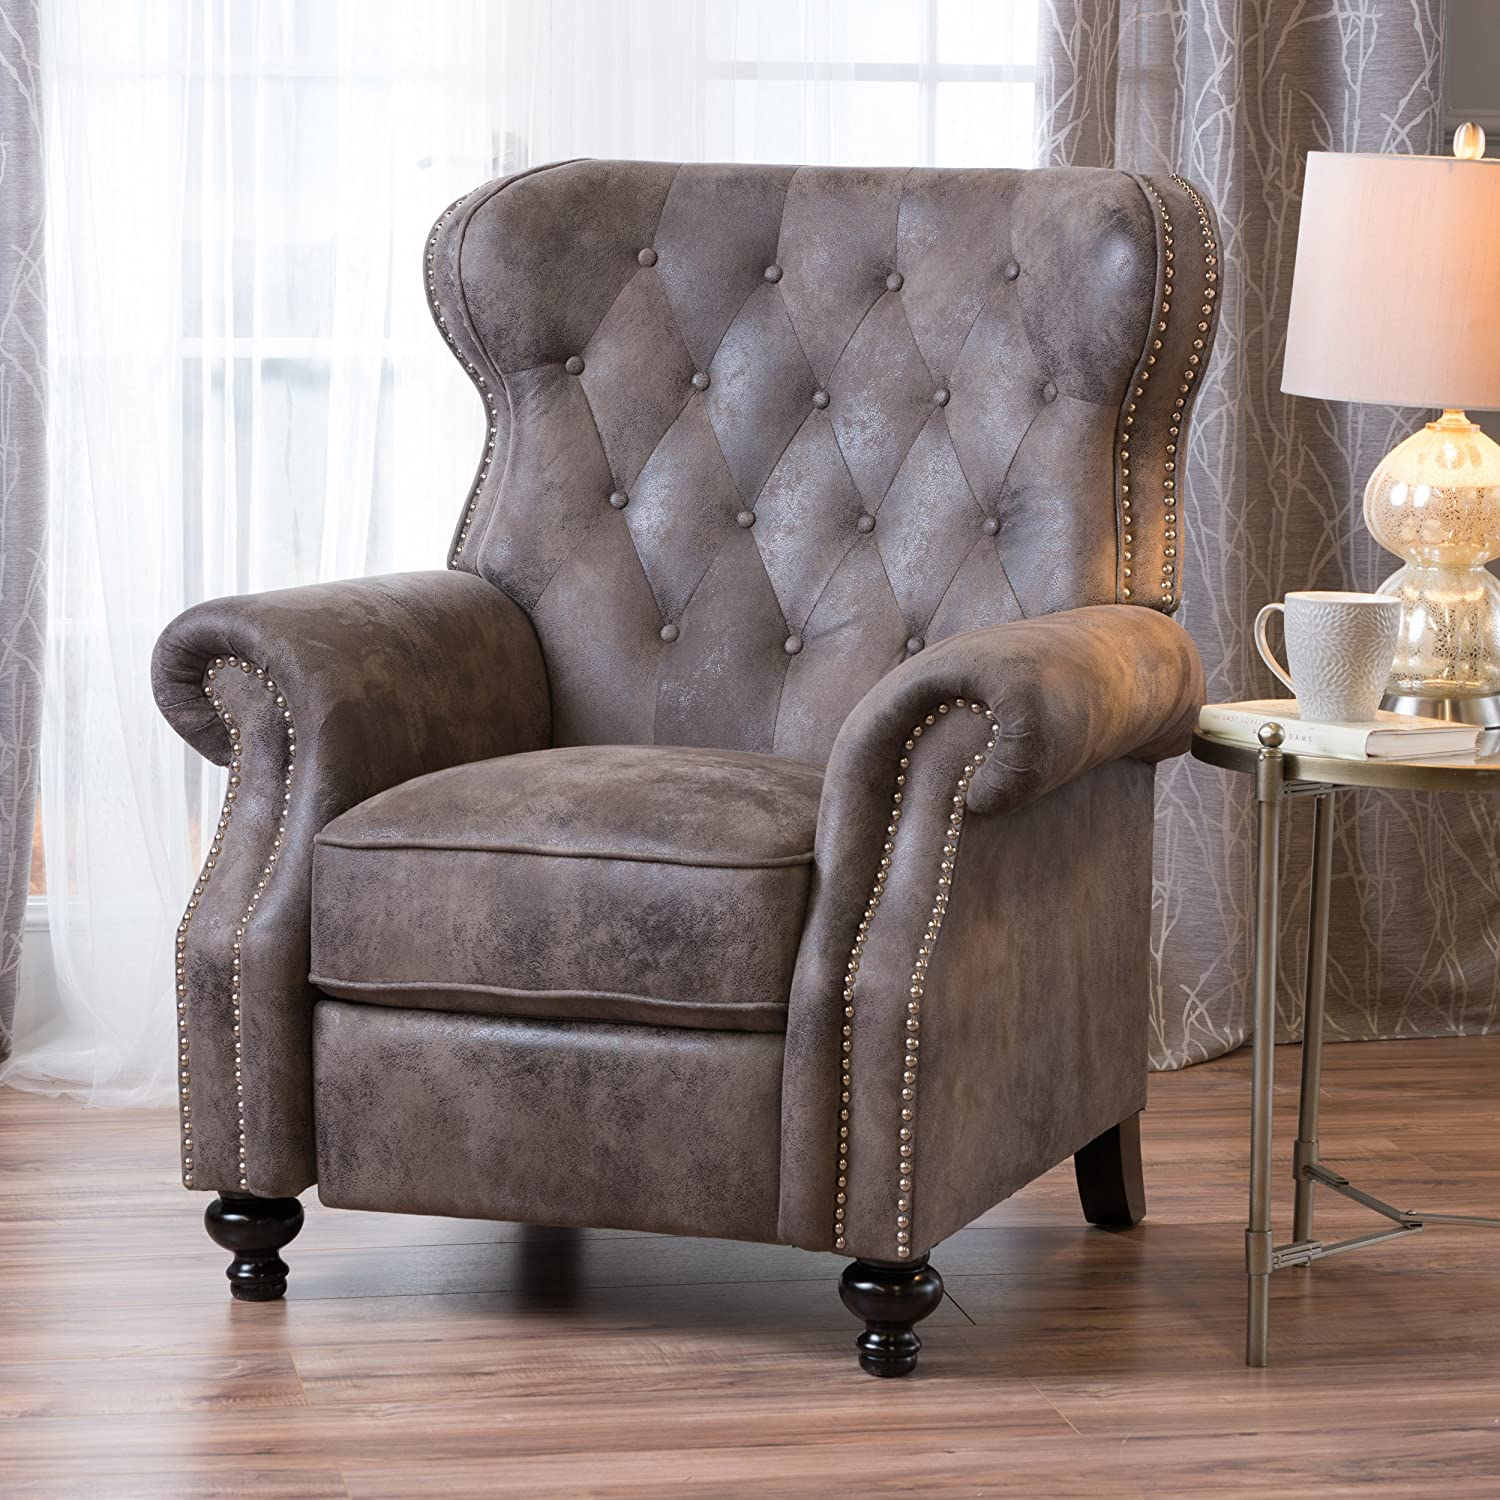 Christopher Knight Home Walder Tufted Microfiber Recliner, Warm Stone